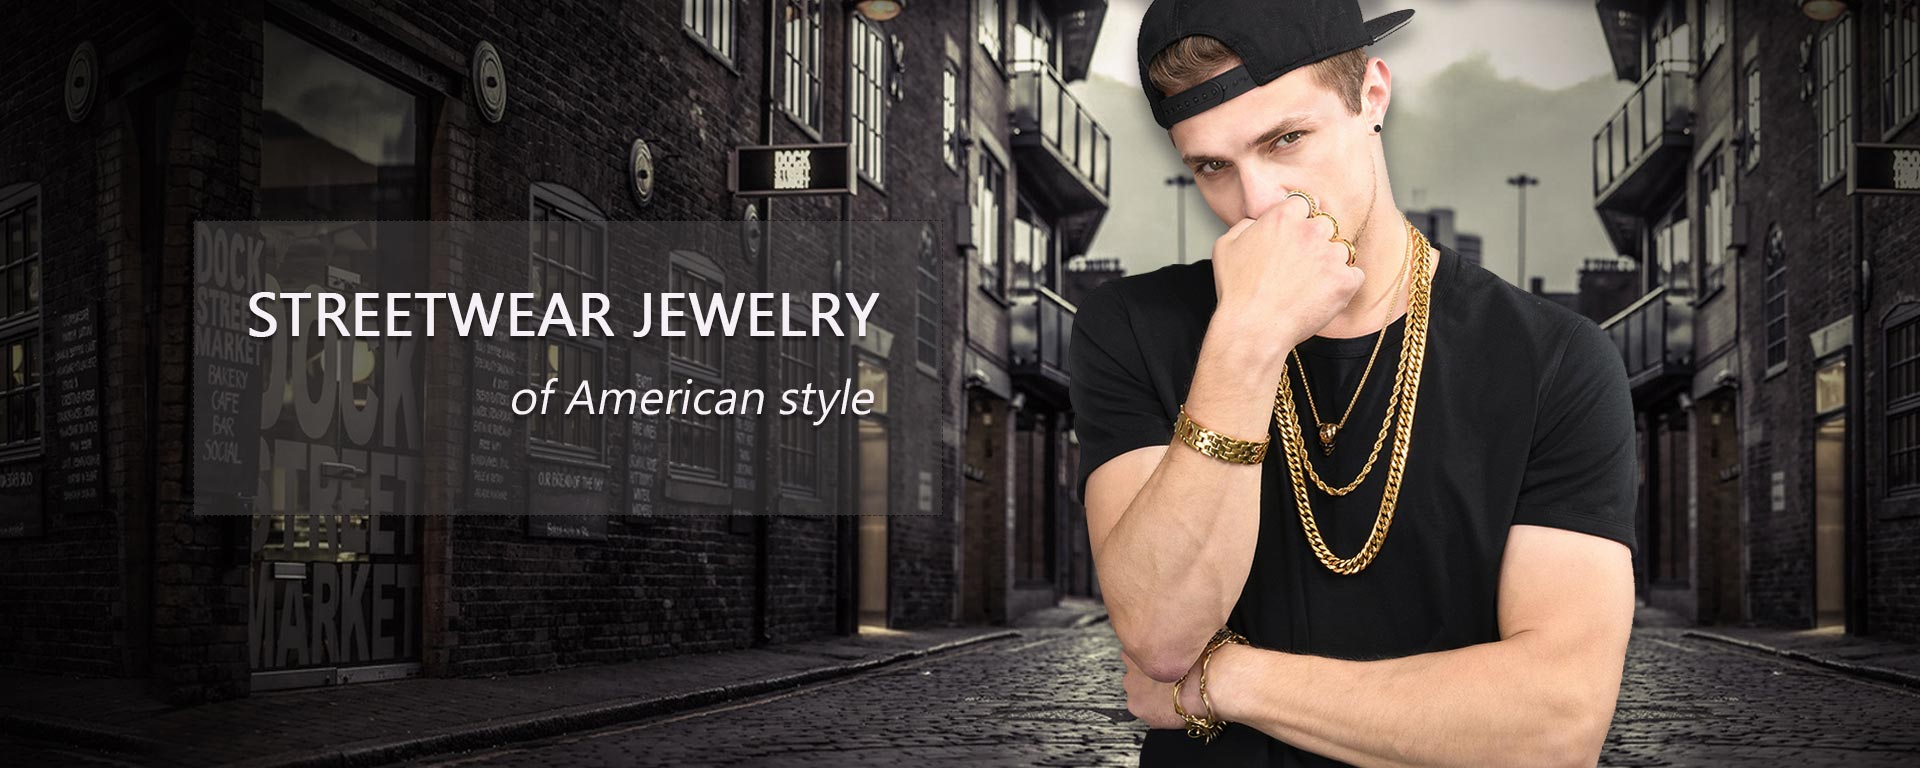 hiphop-jewelry